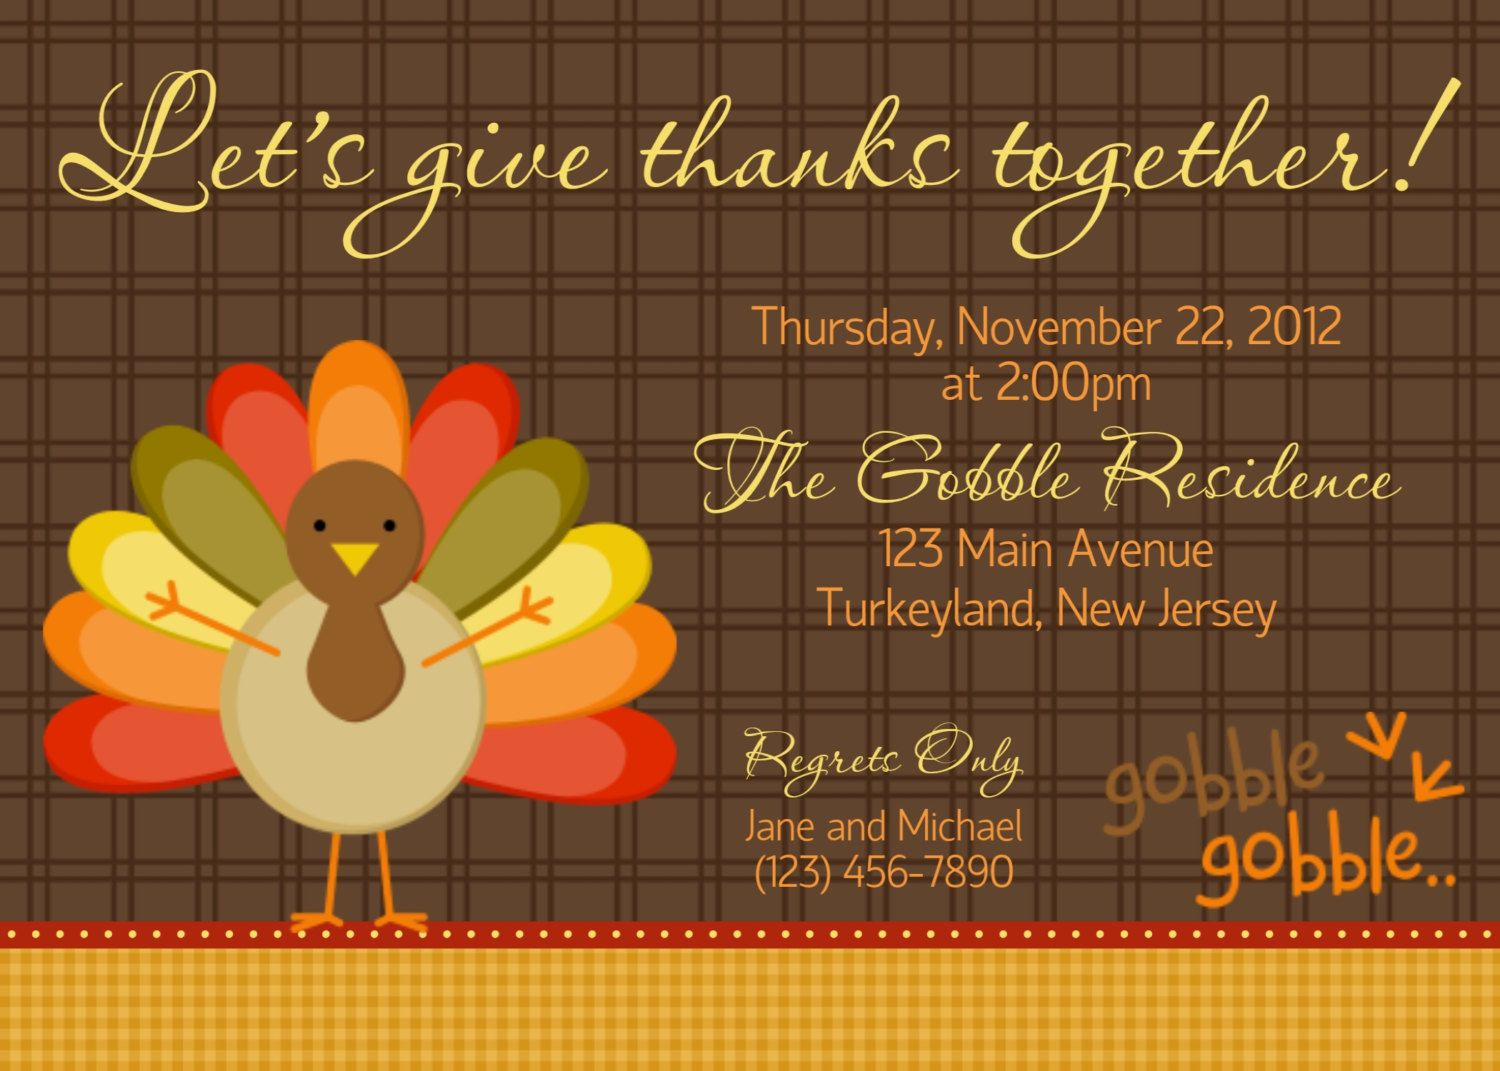 Free Thanksgiving Invitation Templates Pasoevolistco - Paint party invitation template free